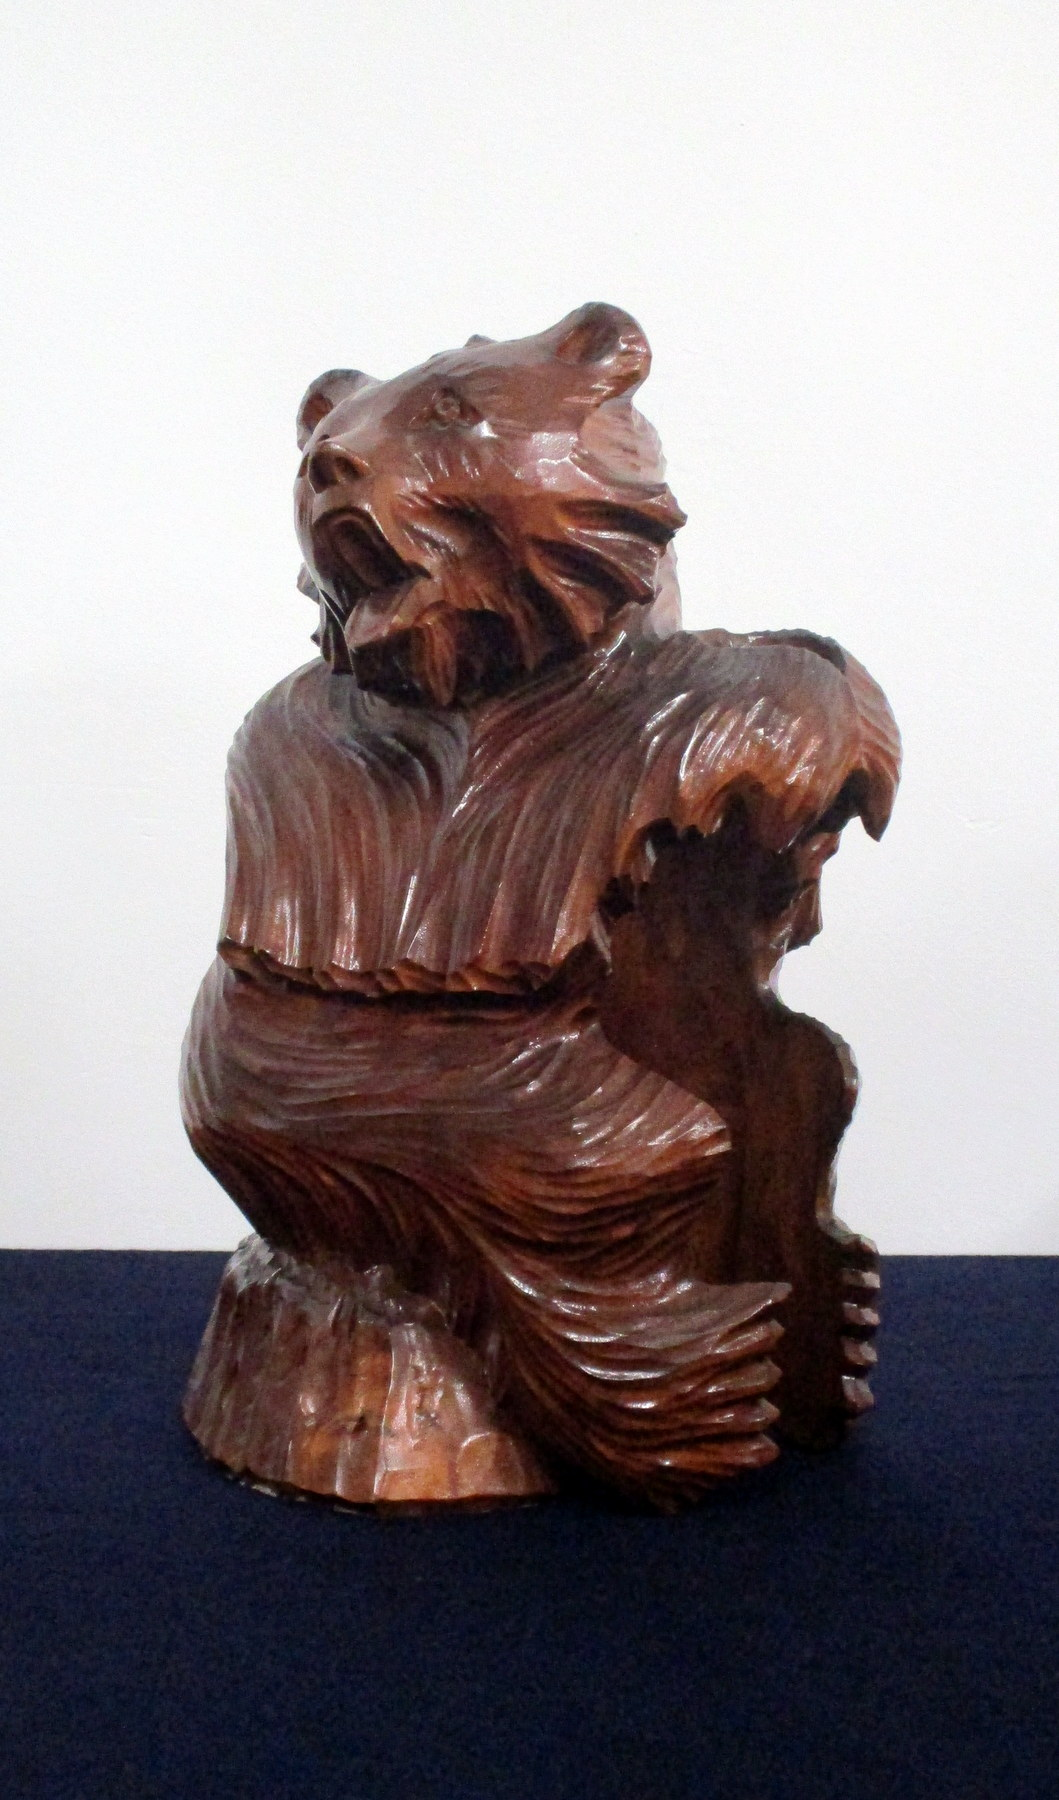 A Carved Wood Bottle Holder in the Form of a Bear